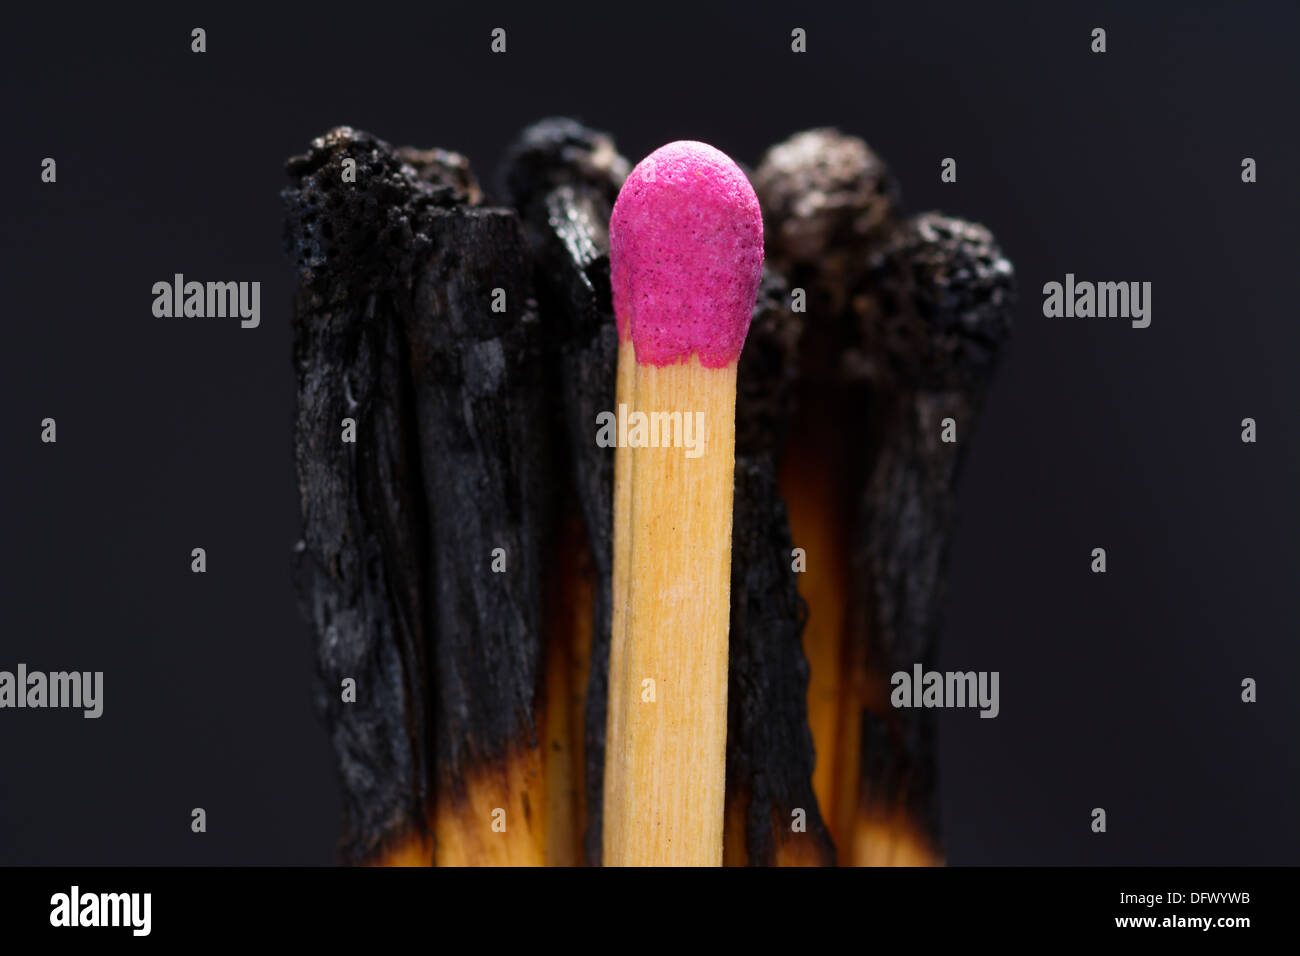 Concept photo showing burned out matches with one untouched one illustrating the burned out and leadership business - Stock Image